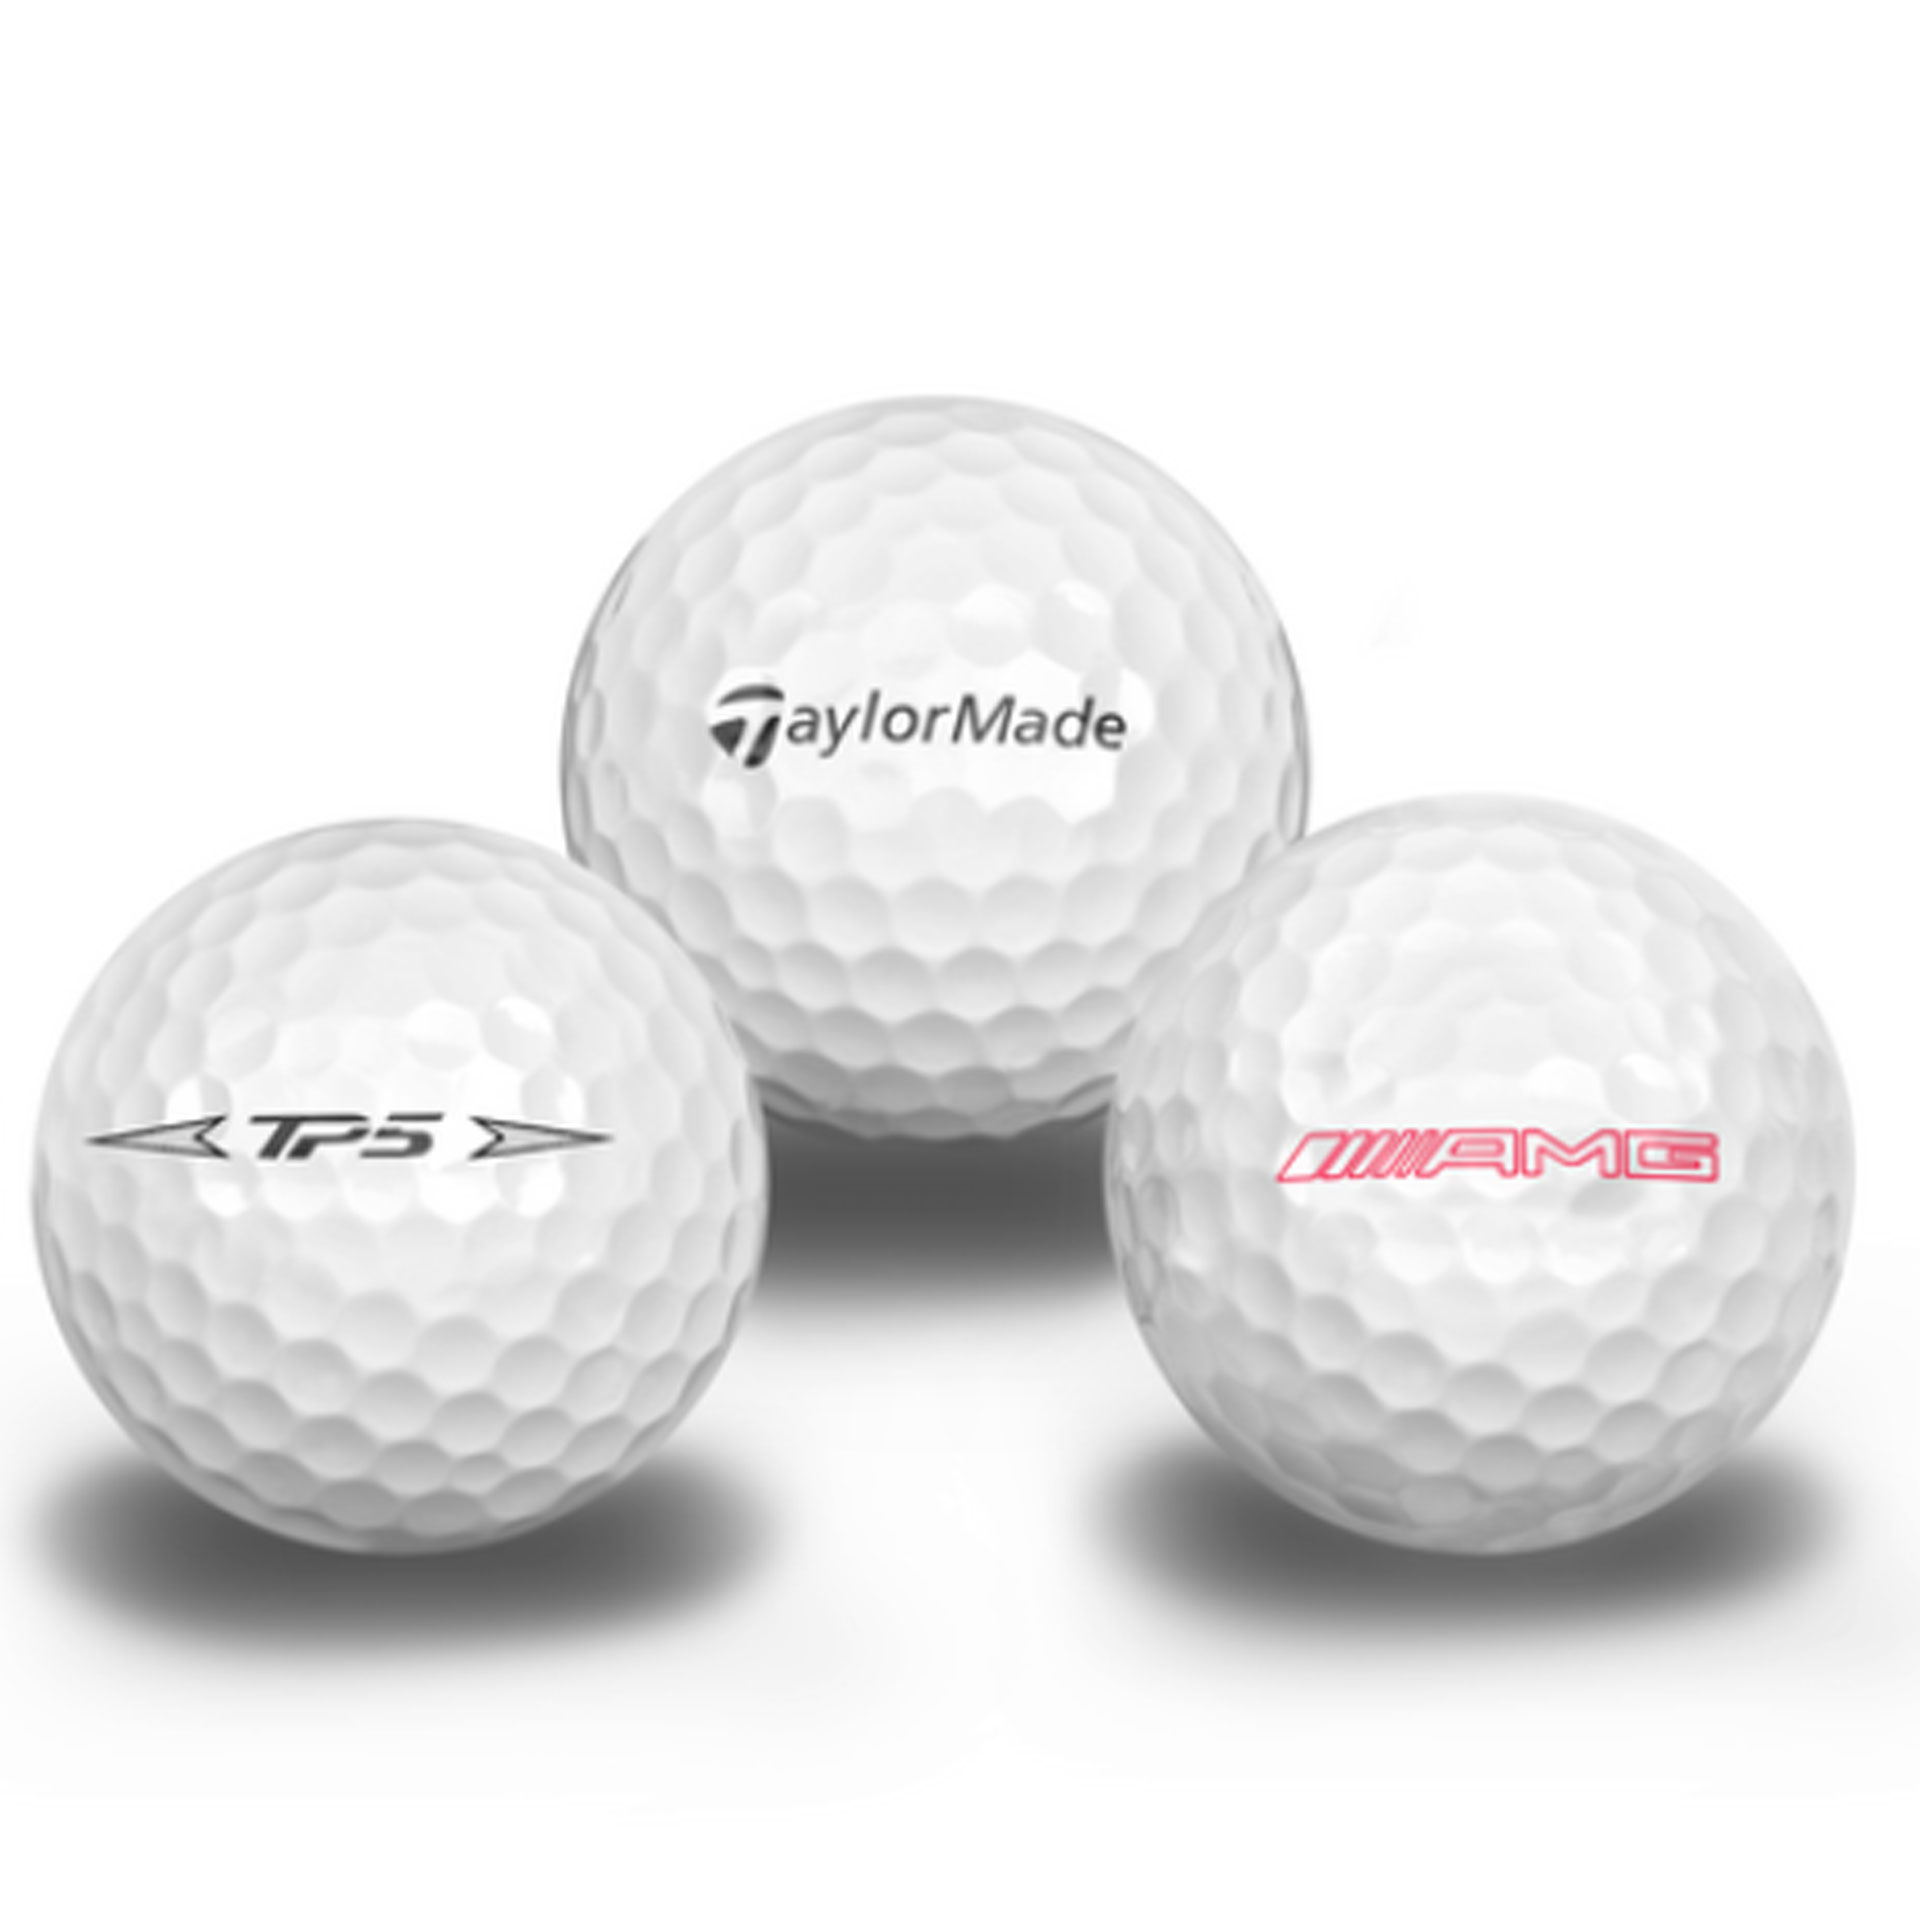 Mercedes-AMG Golfbälle 3er-Set by TaylorMade